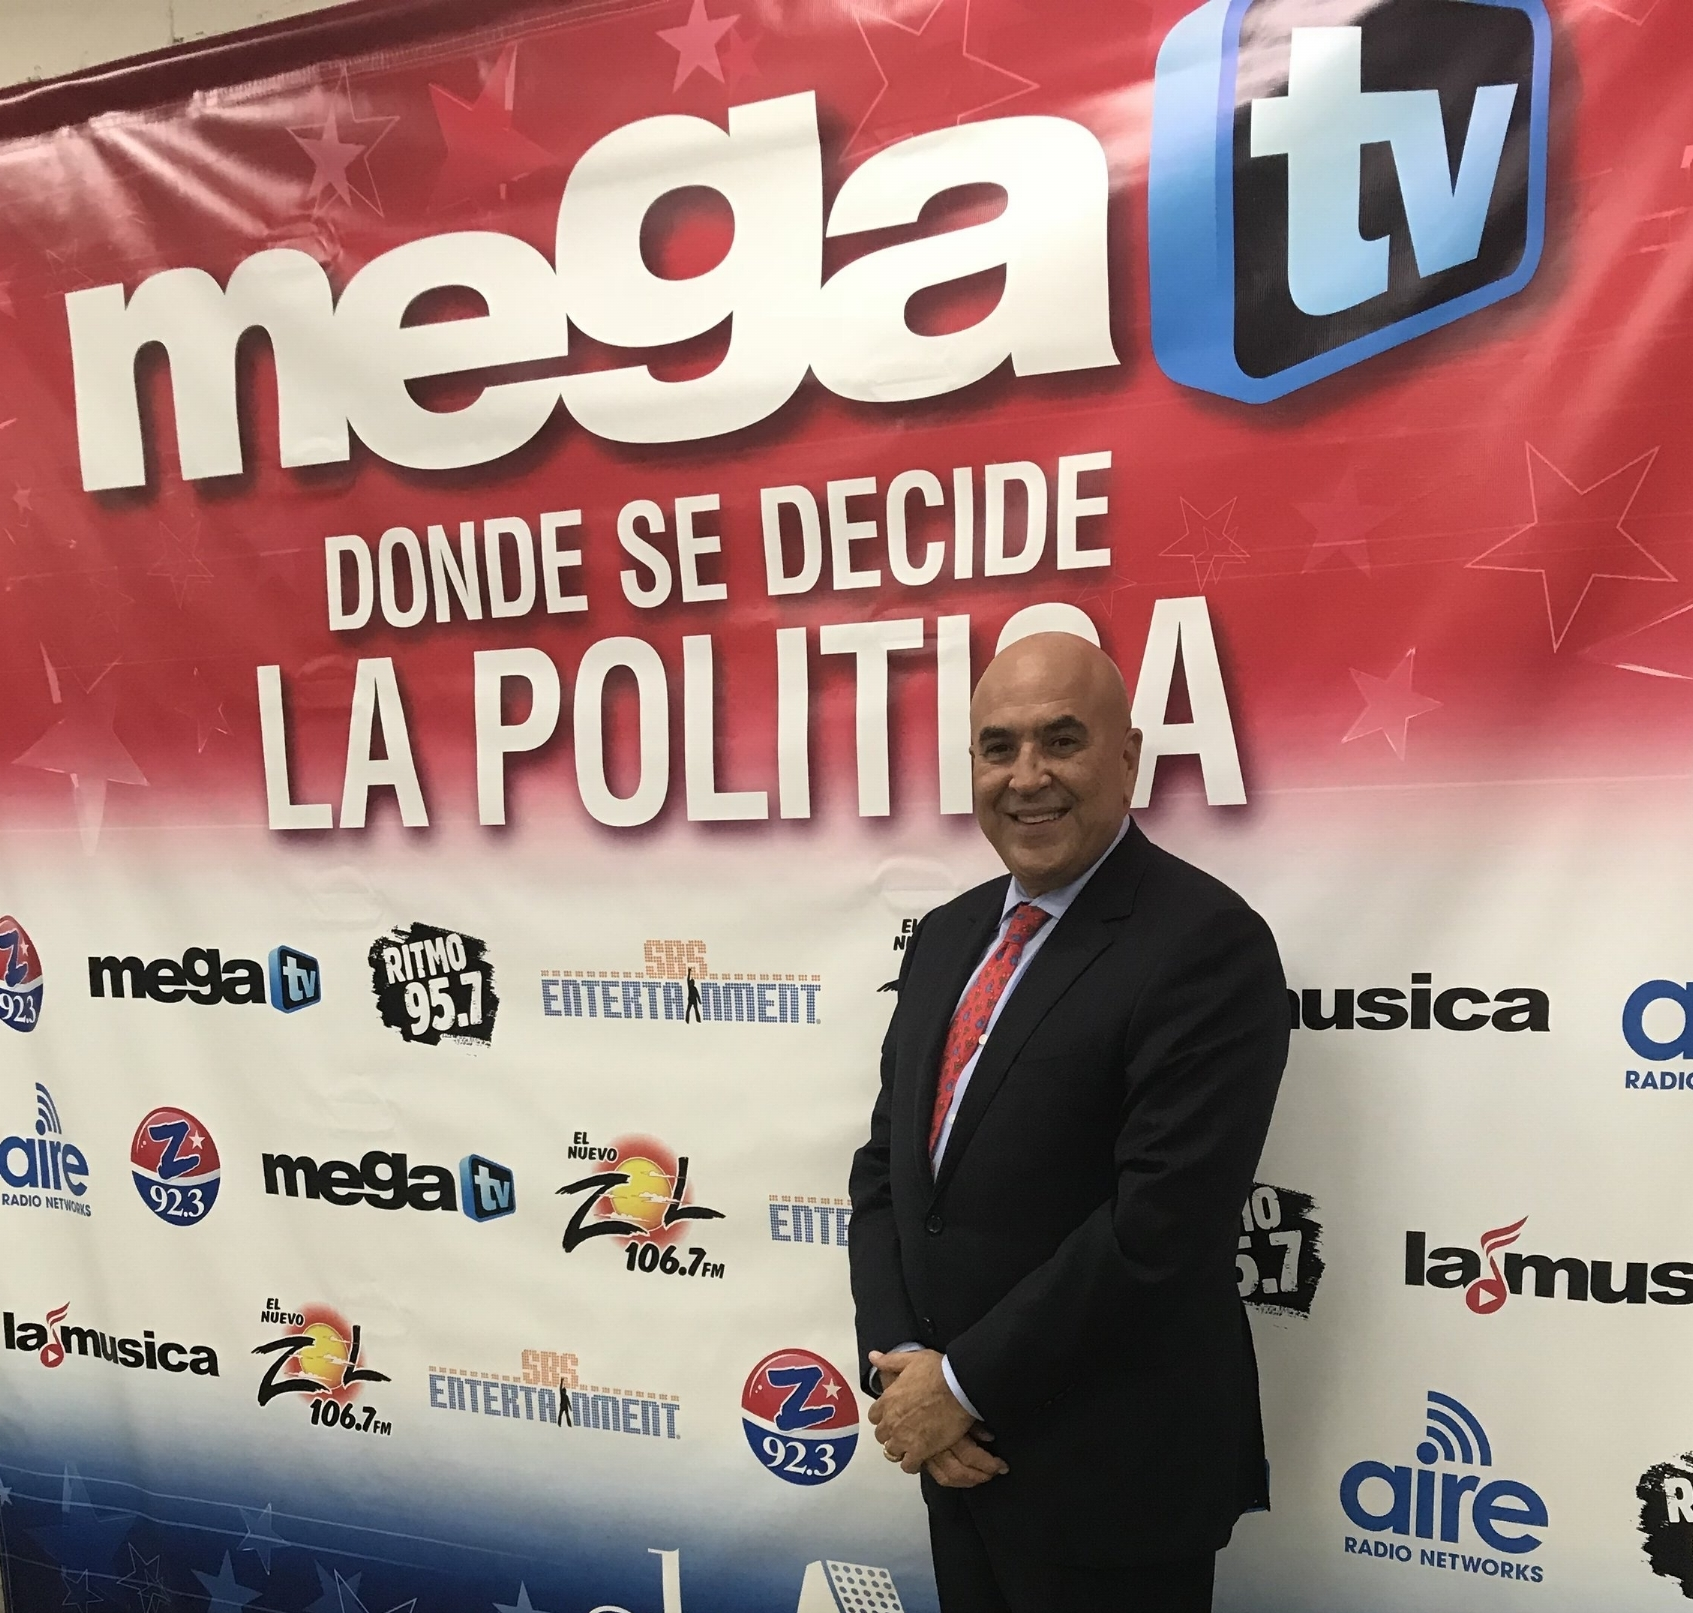 Mr. Abreu is a frequent guest legal analyst on Mega TV.